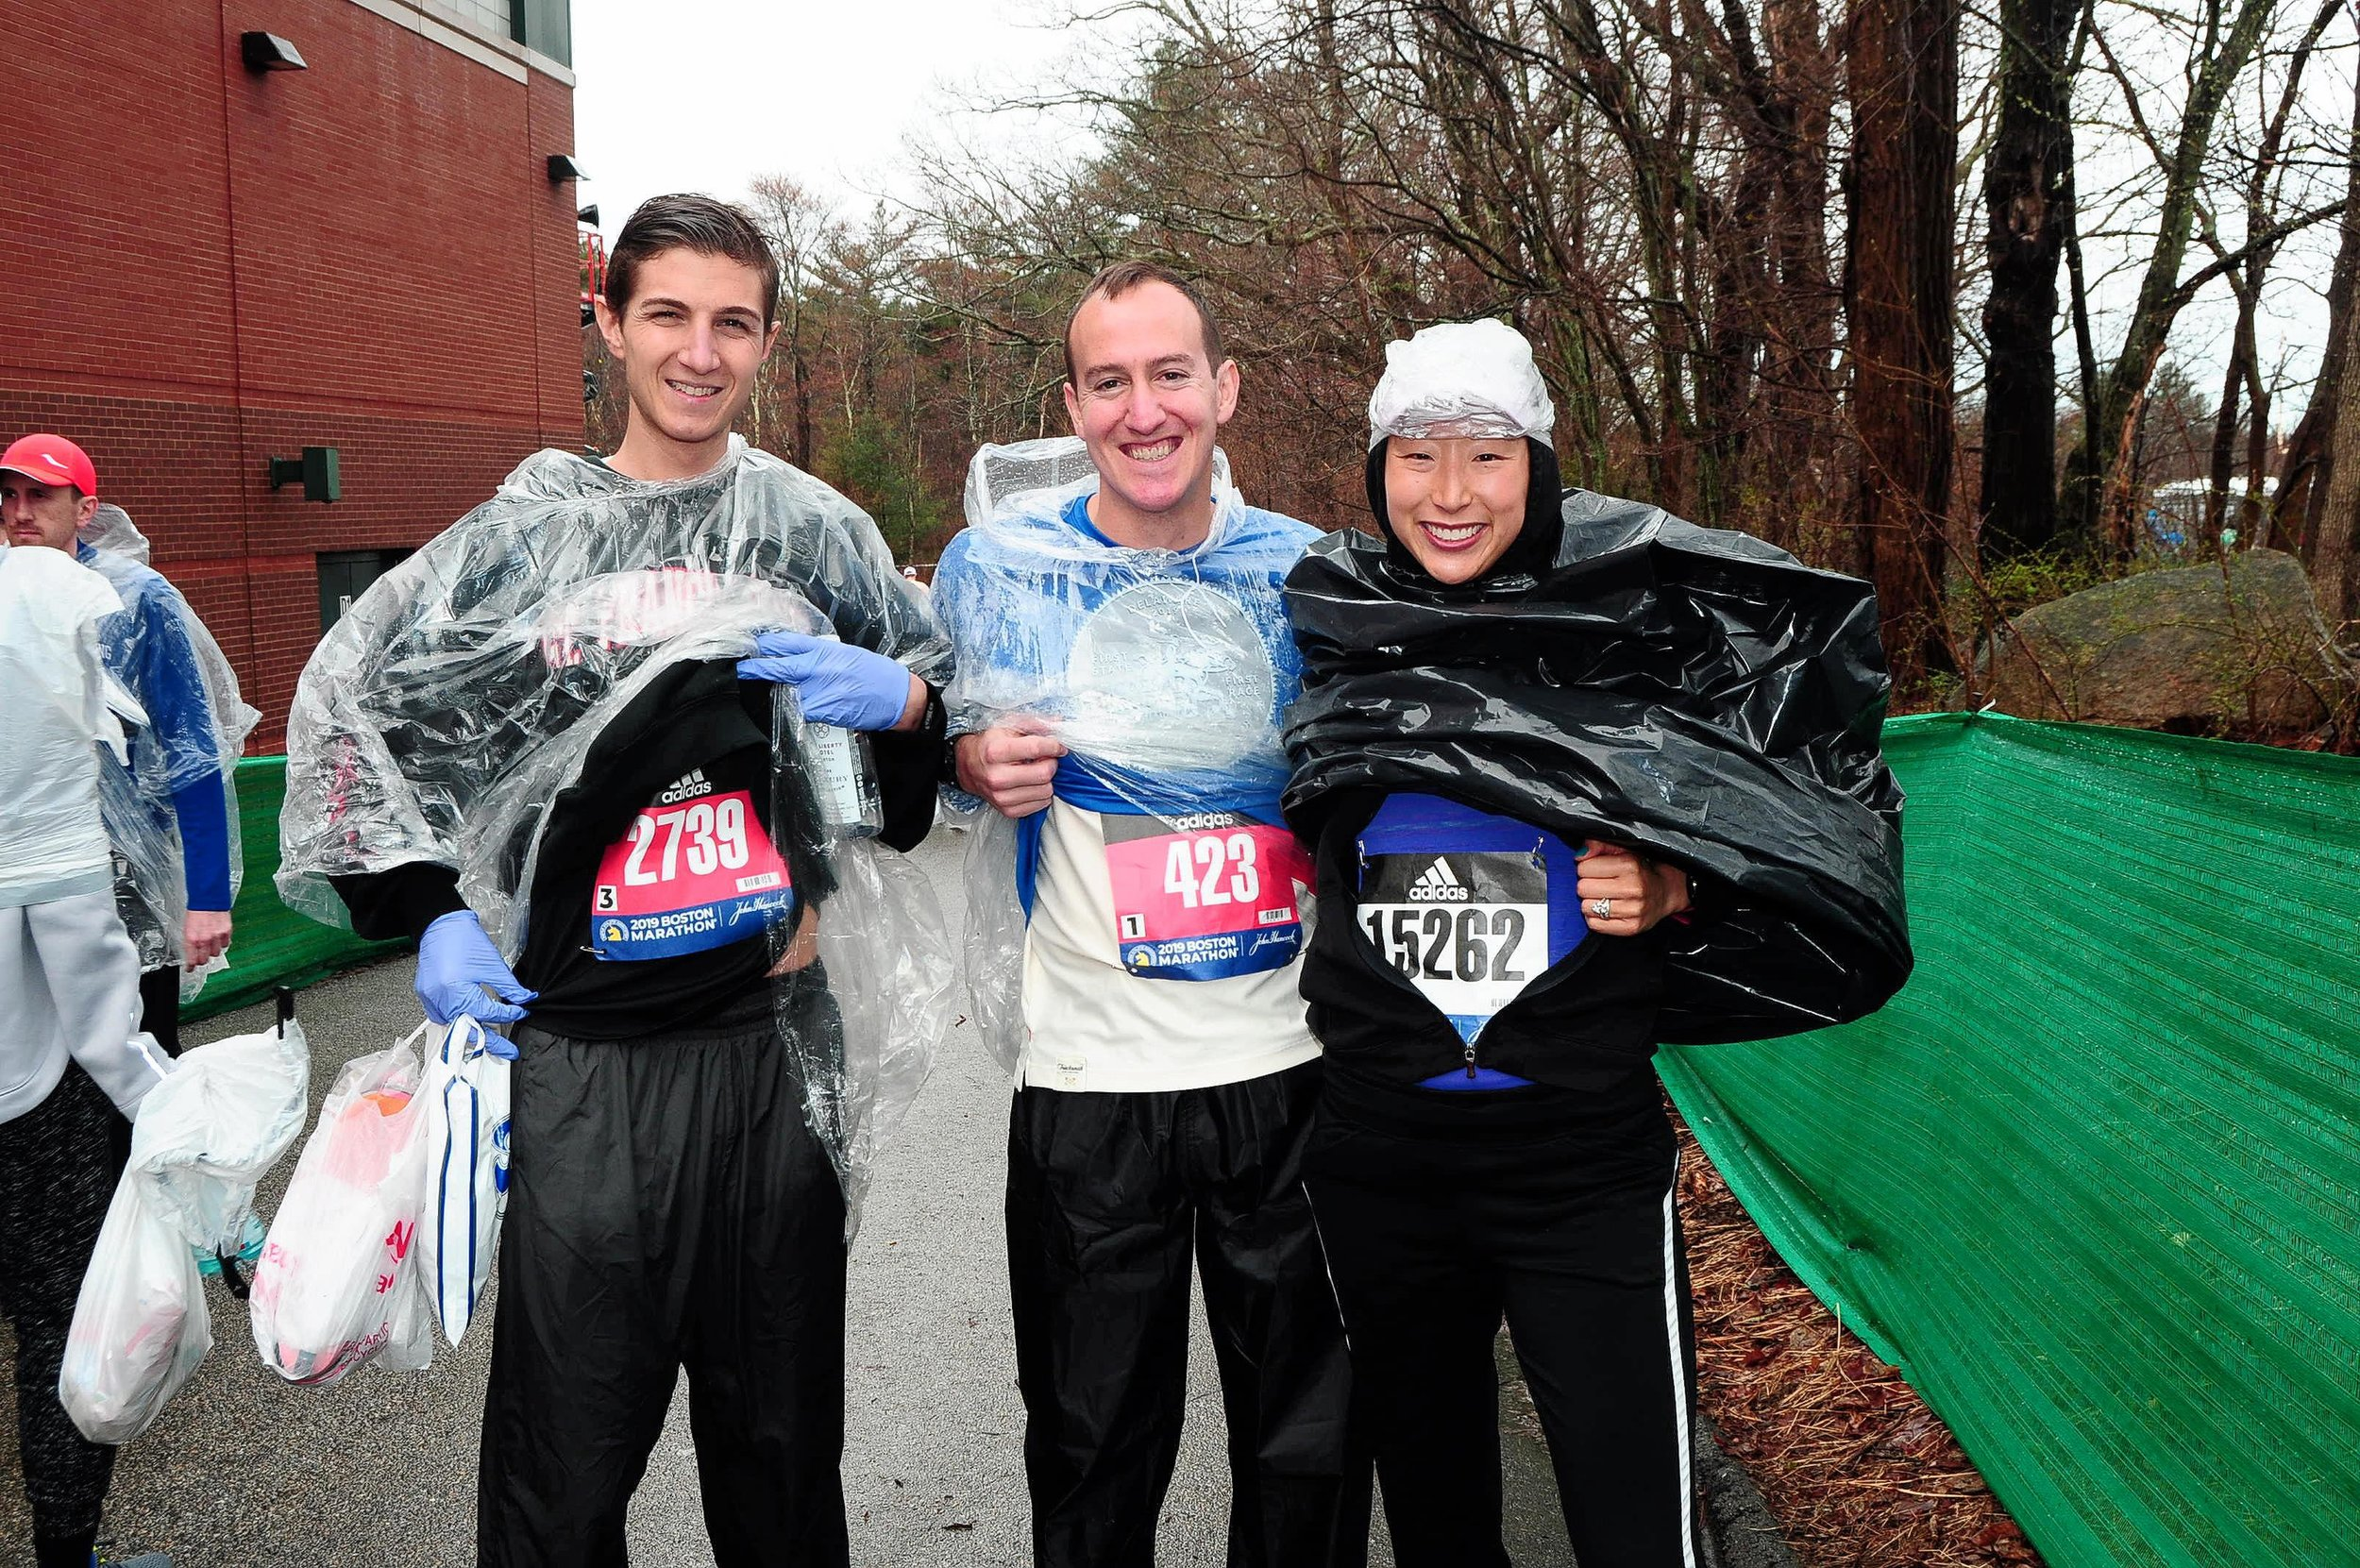 Justin Perkins, Brent Frissora and Eva Frissora on Marathon Monday morning, ready for the rain